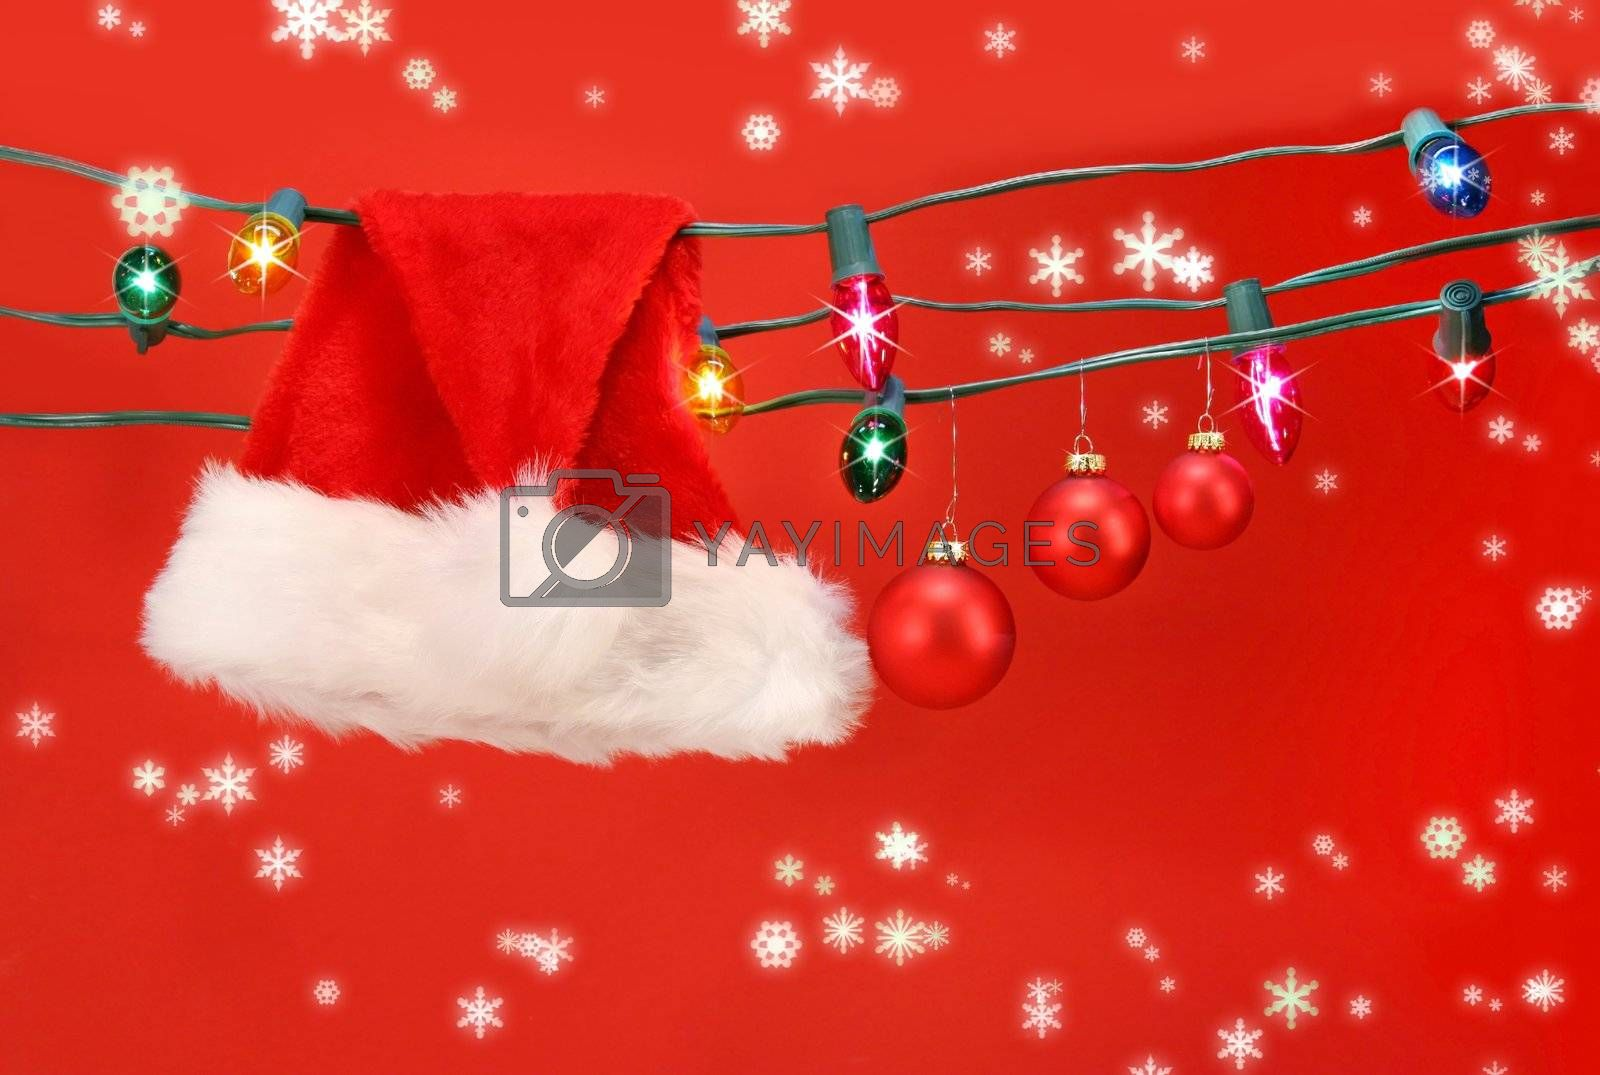 Hanging lights with santa hat by Sandralise